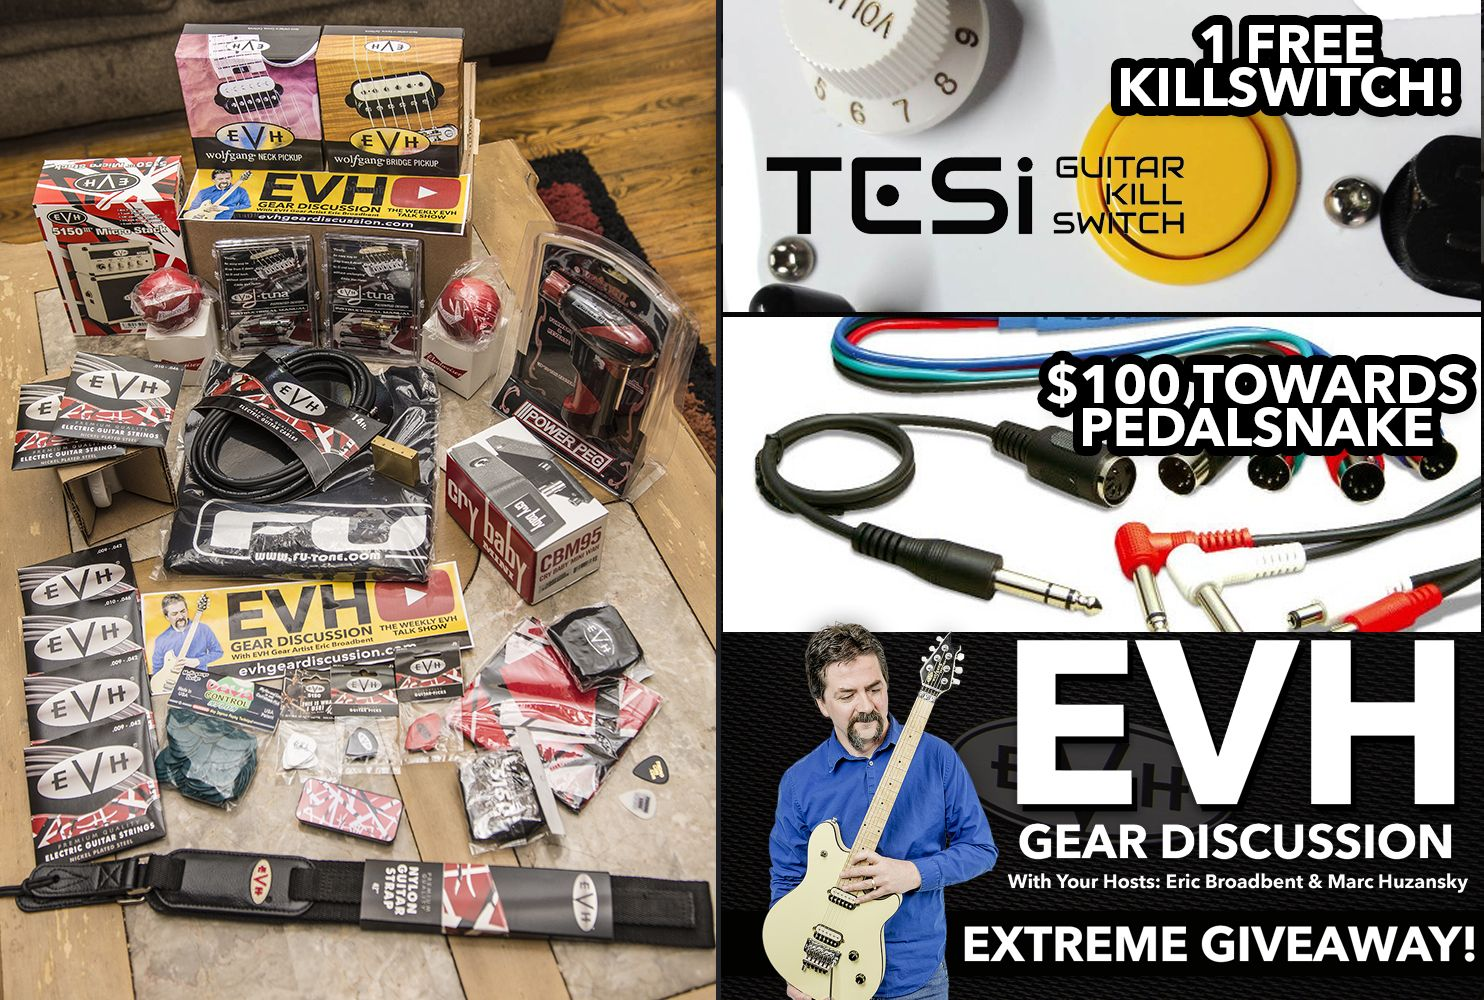 http ericbroadbent.com giveaways evh-gear-discussion-extreme-giveaway lucky 101